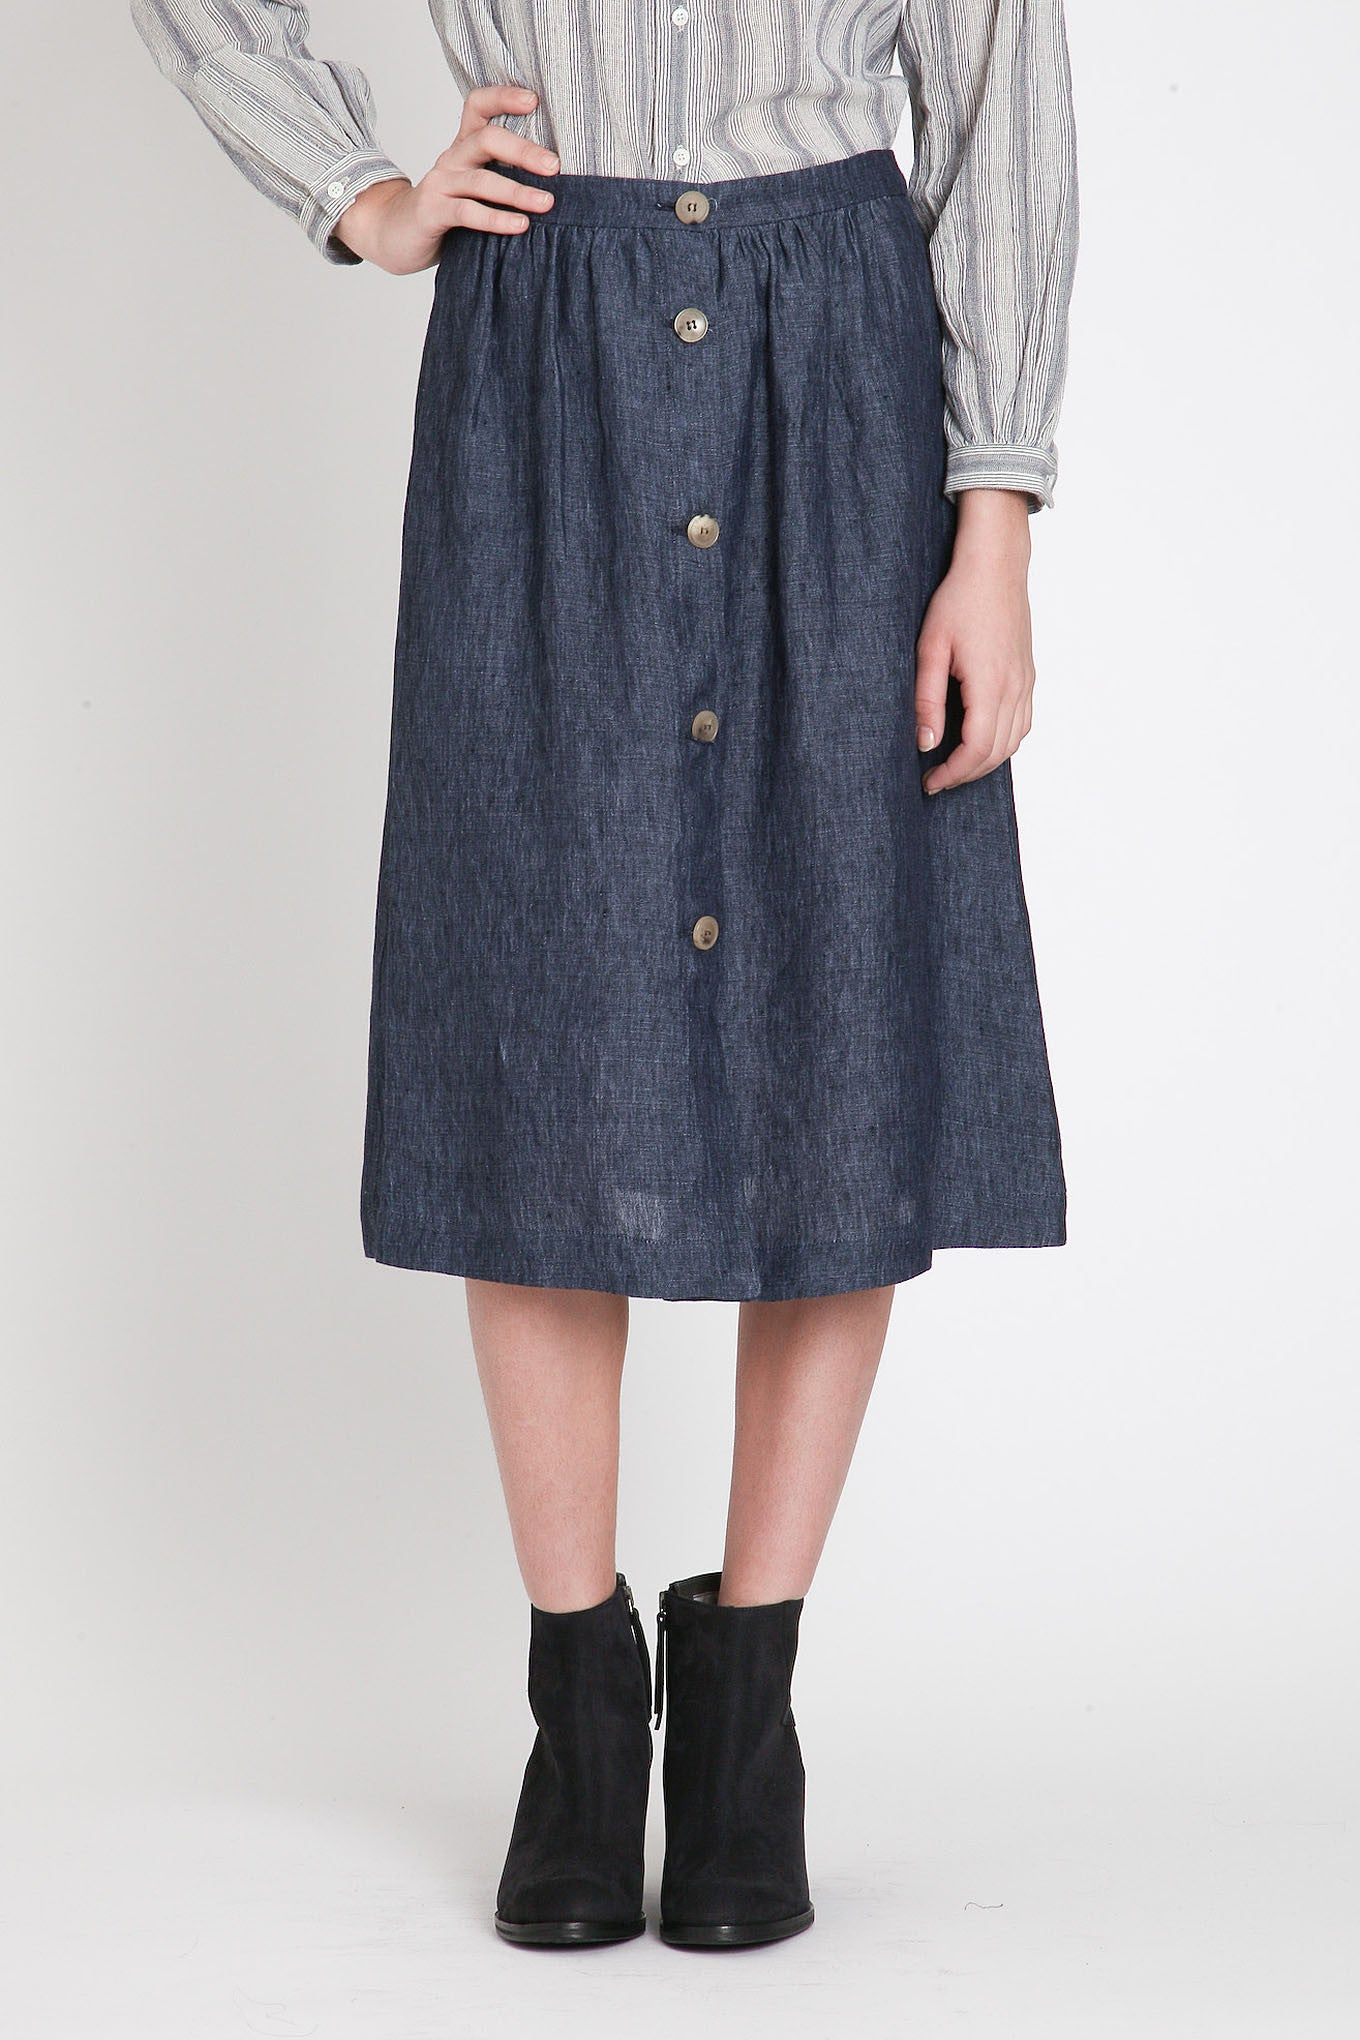 Masscob / Denim Button Front Skirt